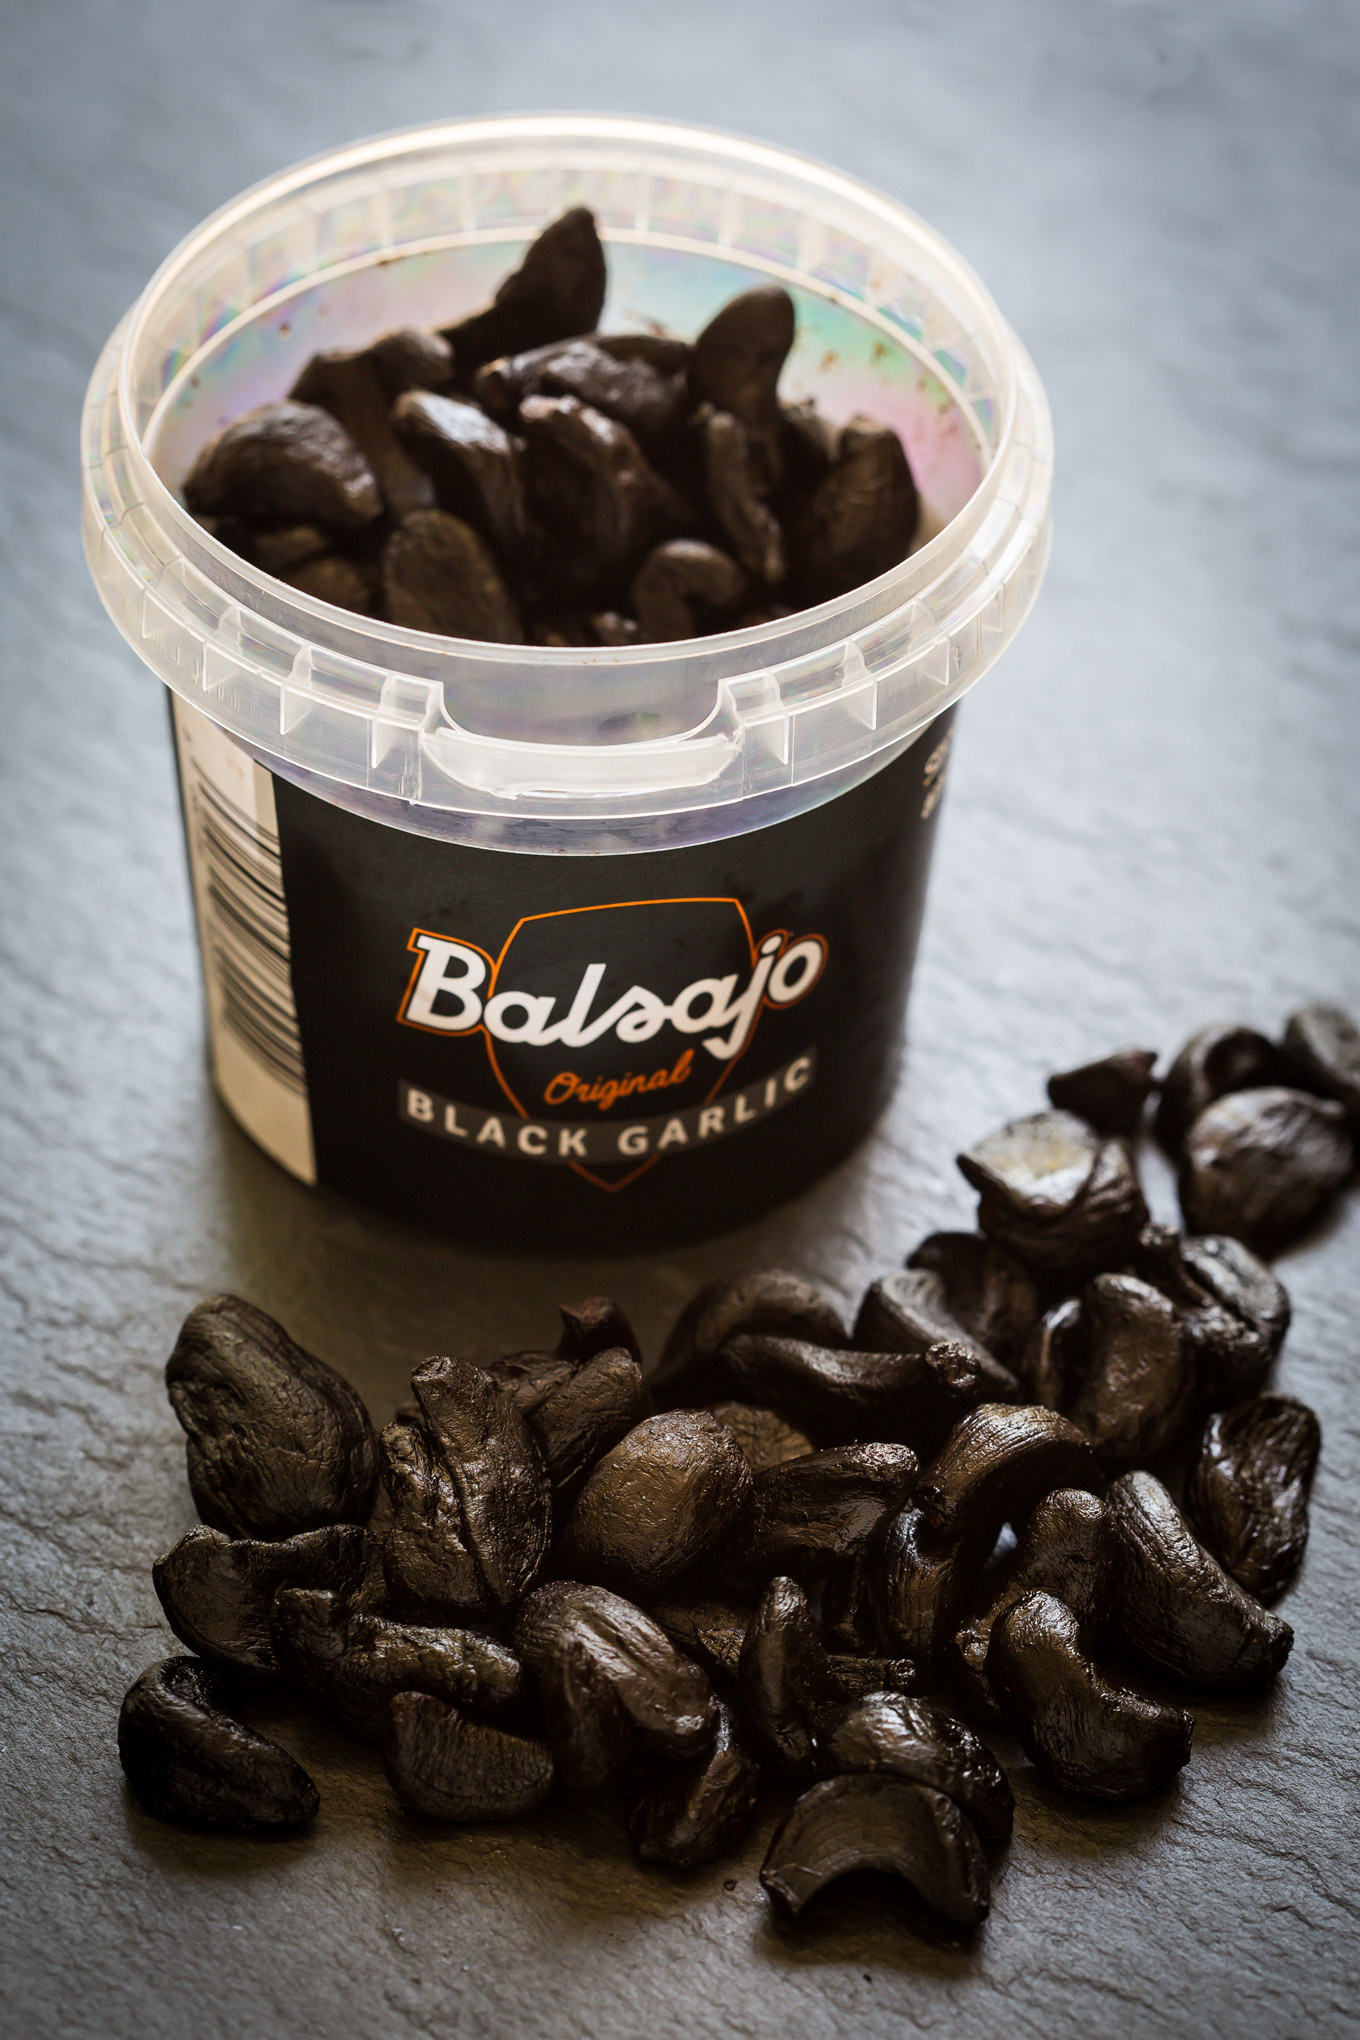 Balsajo Black Garlic Cloves